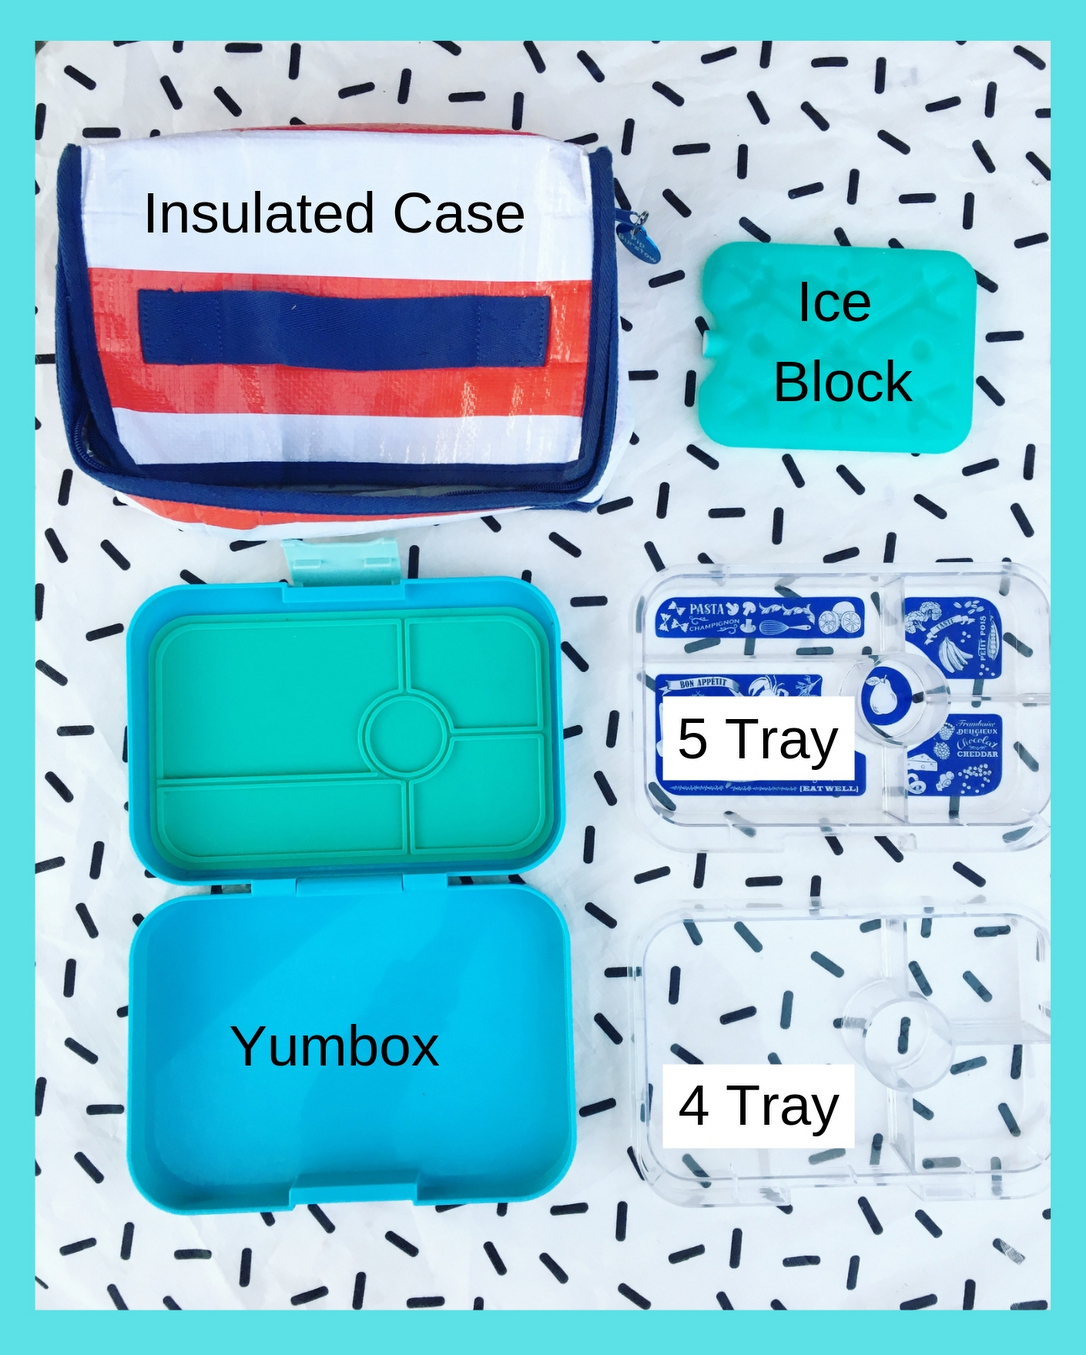 Insulated Case for Yumbox